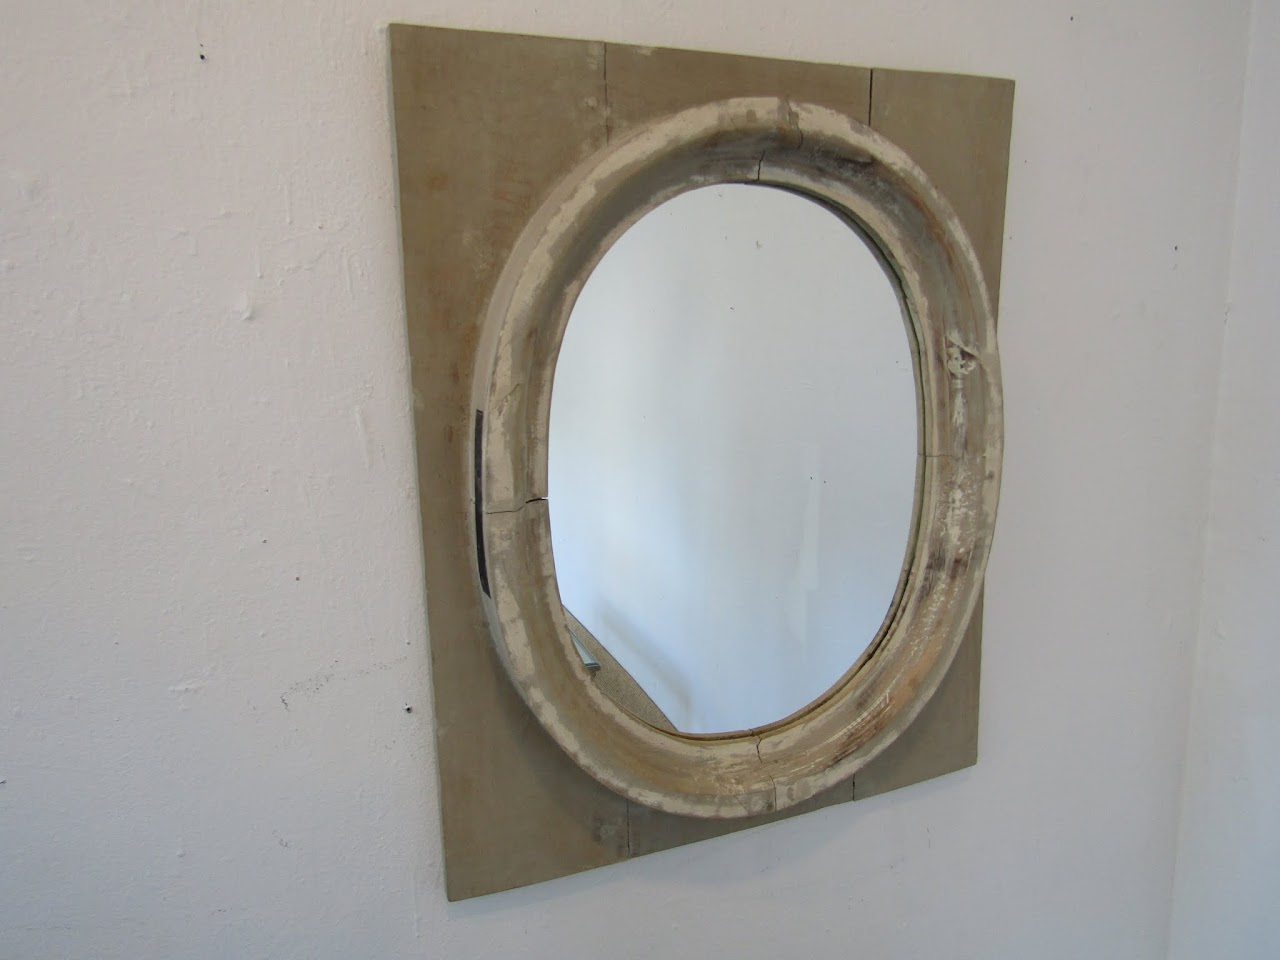 St. Remy Wooden Framed Mirror 1